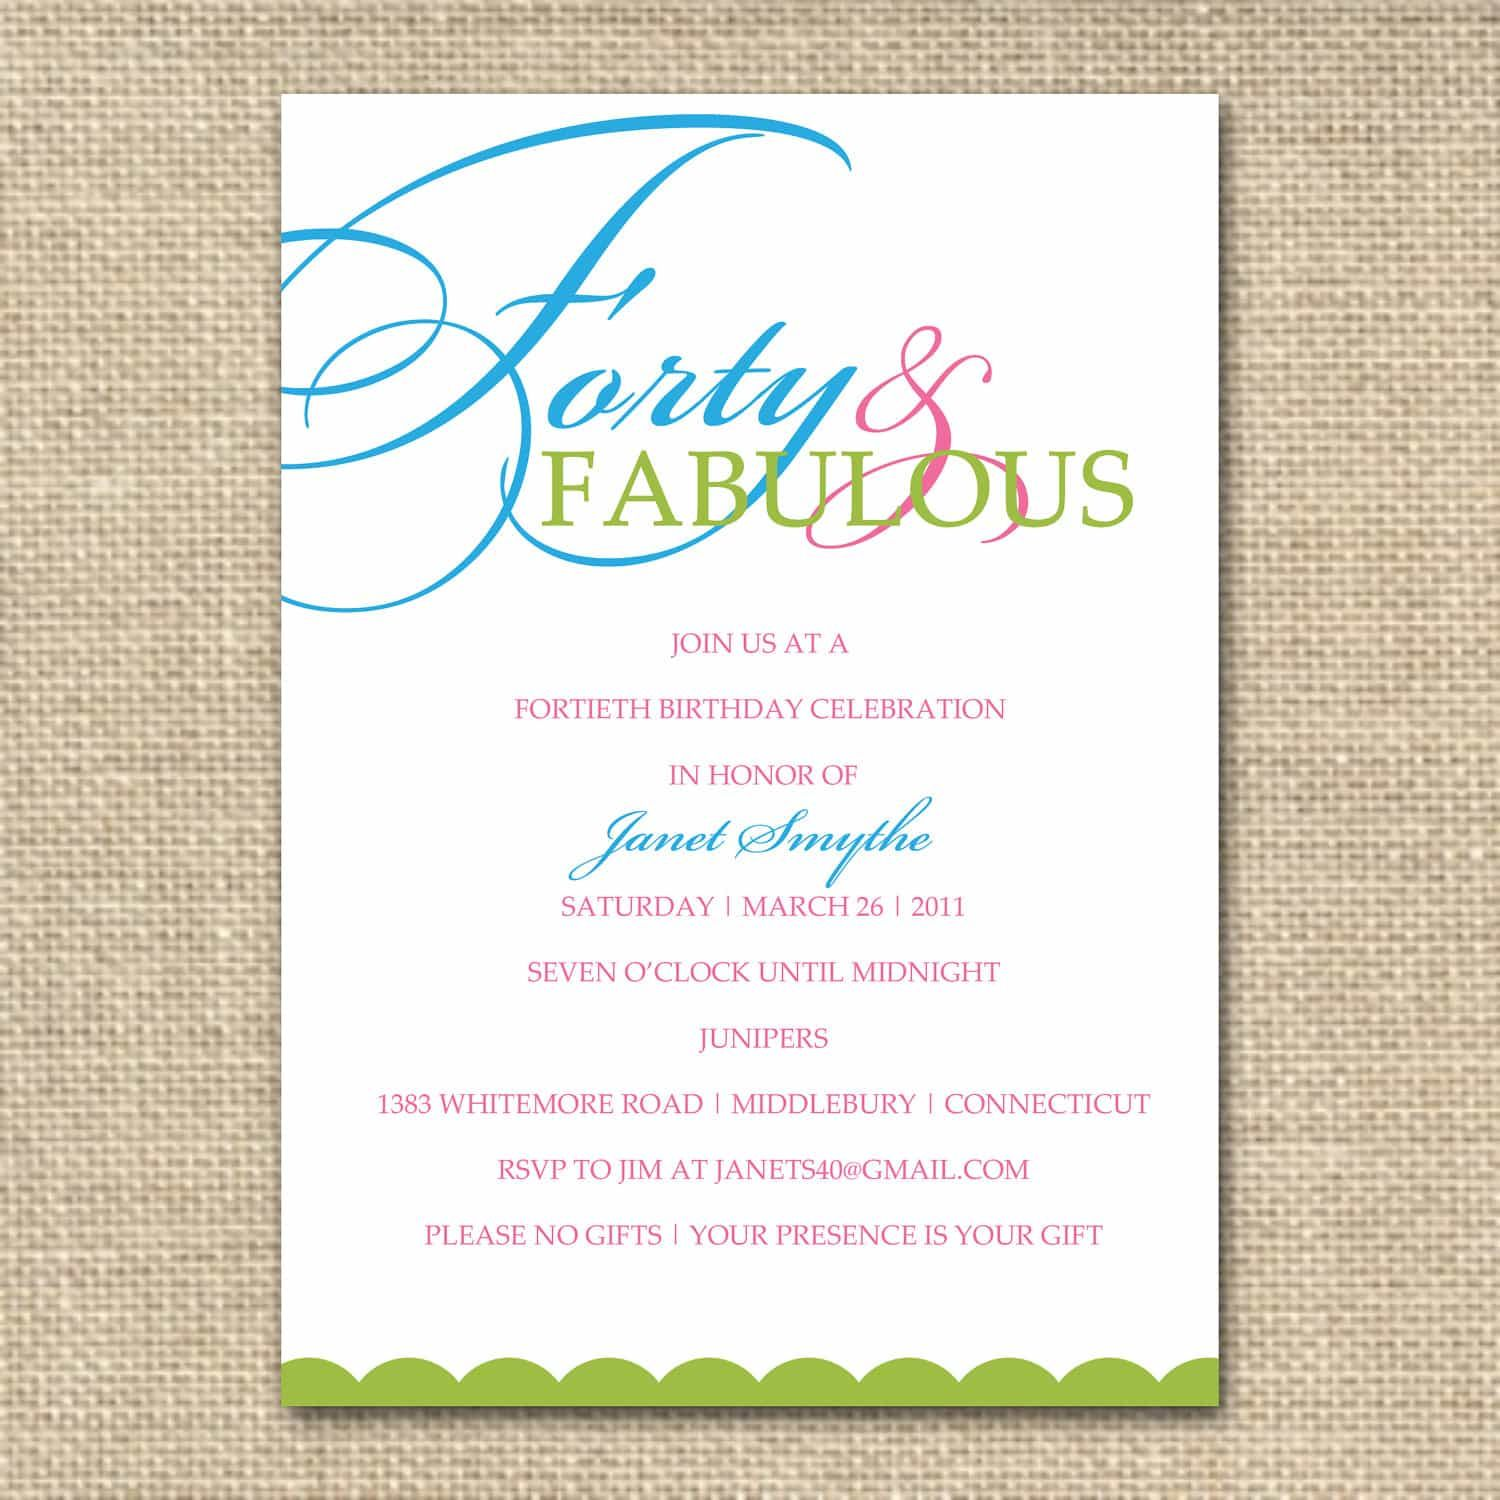 cool How to Select the 40th Birthday Invitation Wording Free Ideas